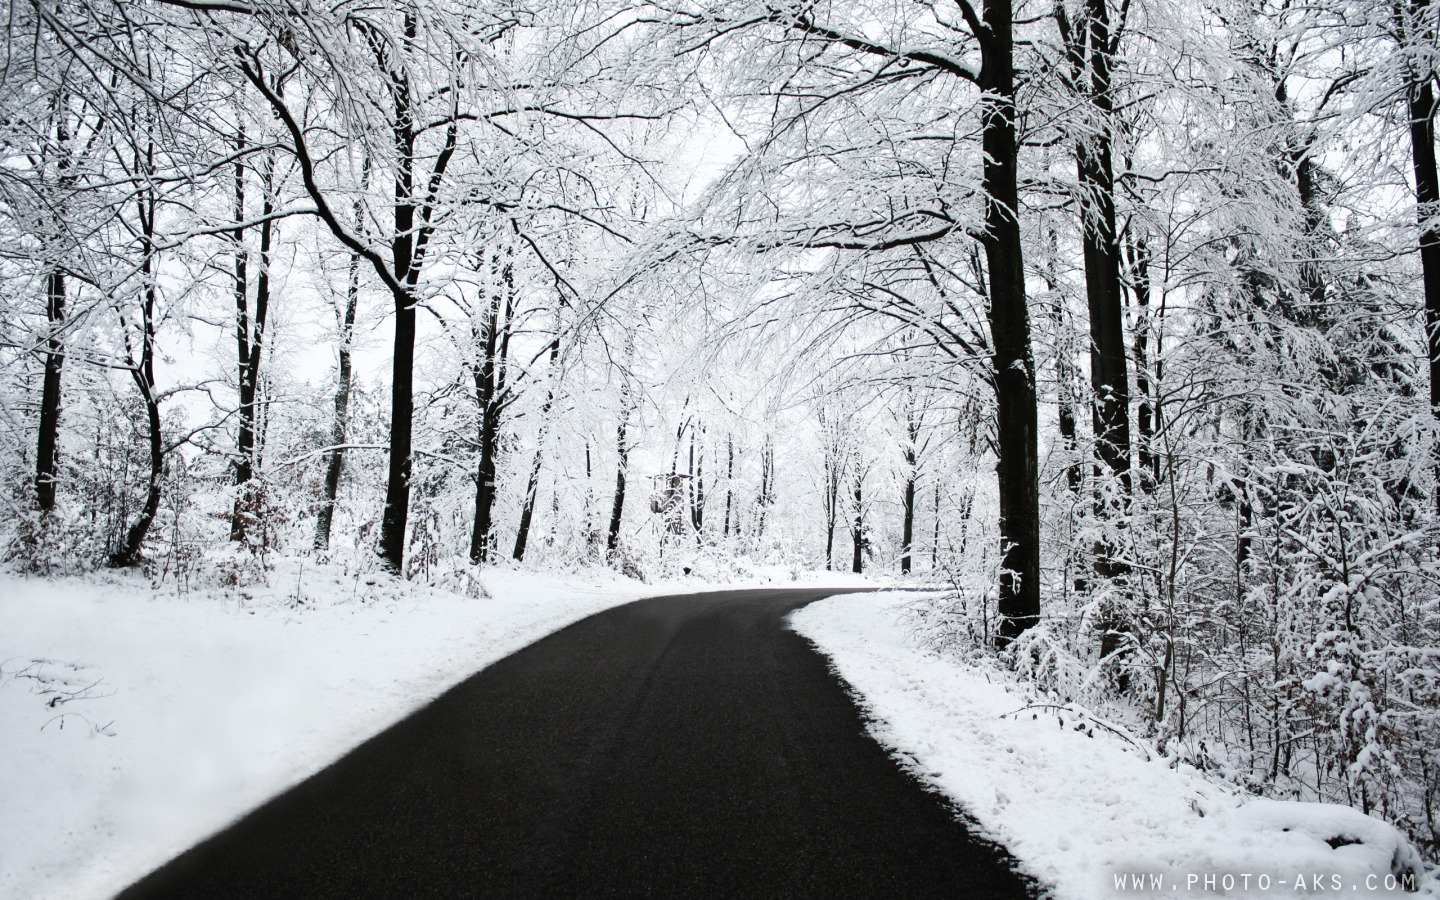 http://pic.photo-aks.com/photo/nature/season/winter/large/Winter_Road.jpg